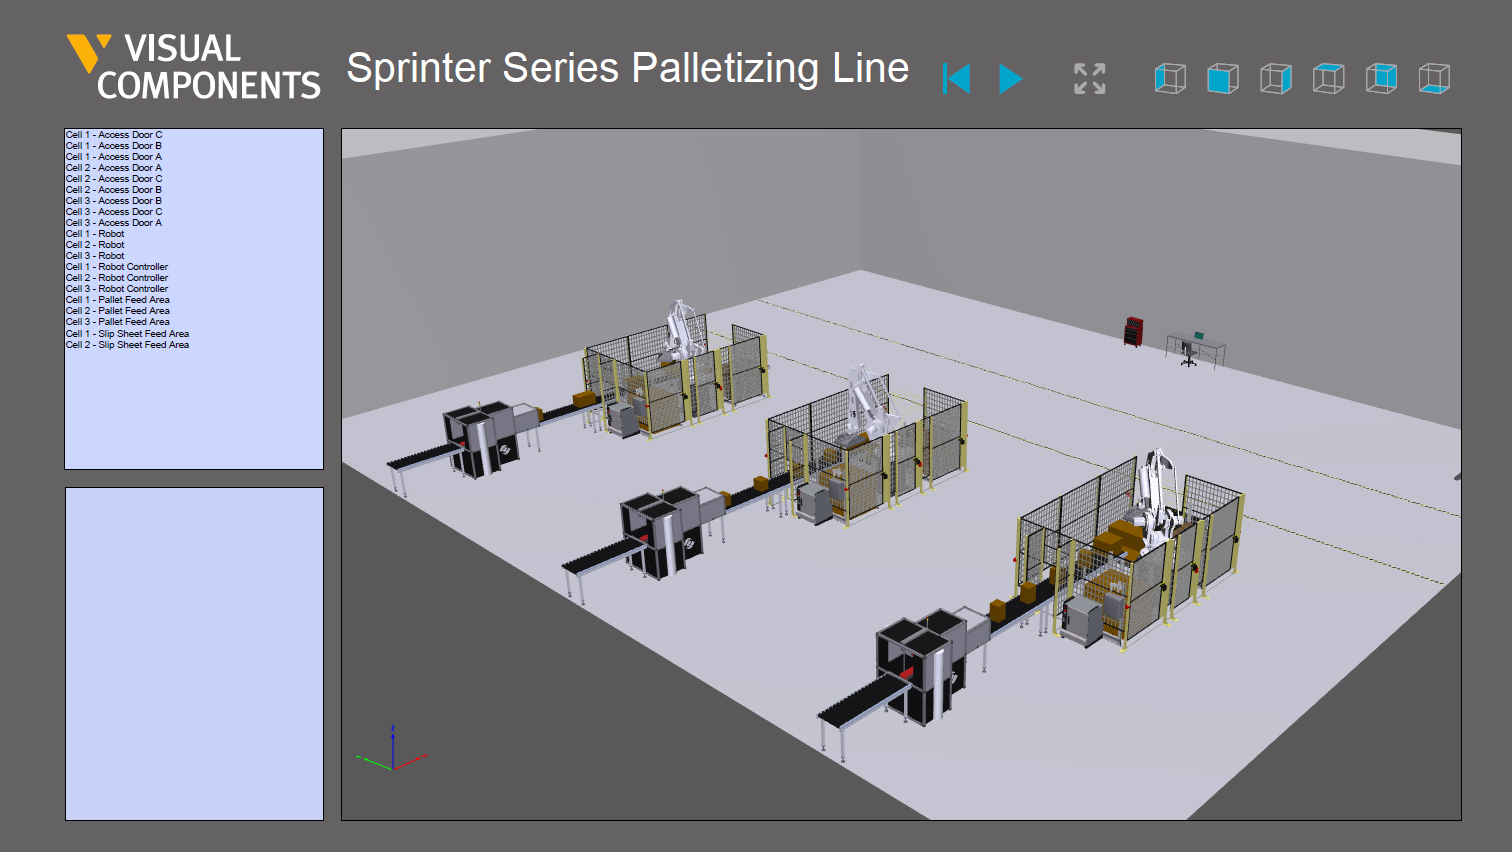 Simulation of a sprinter series palletizing line